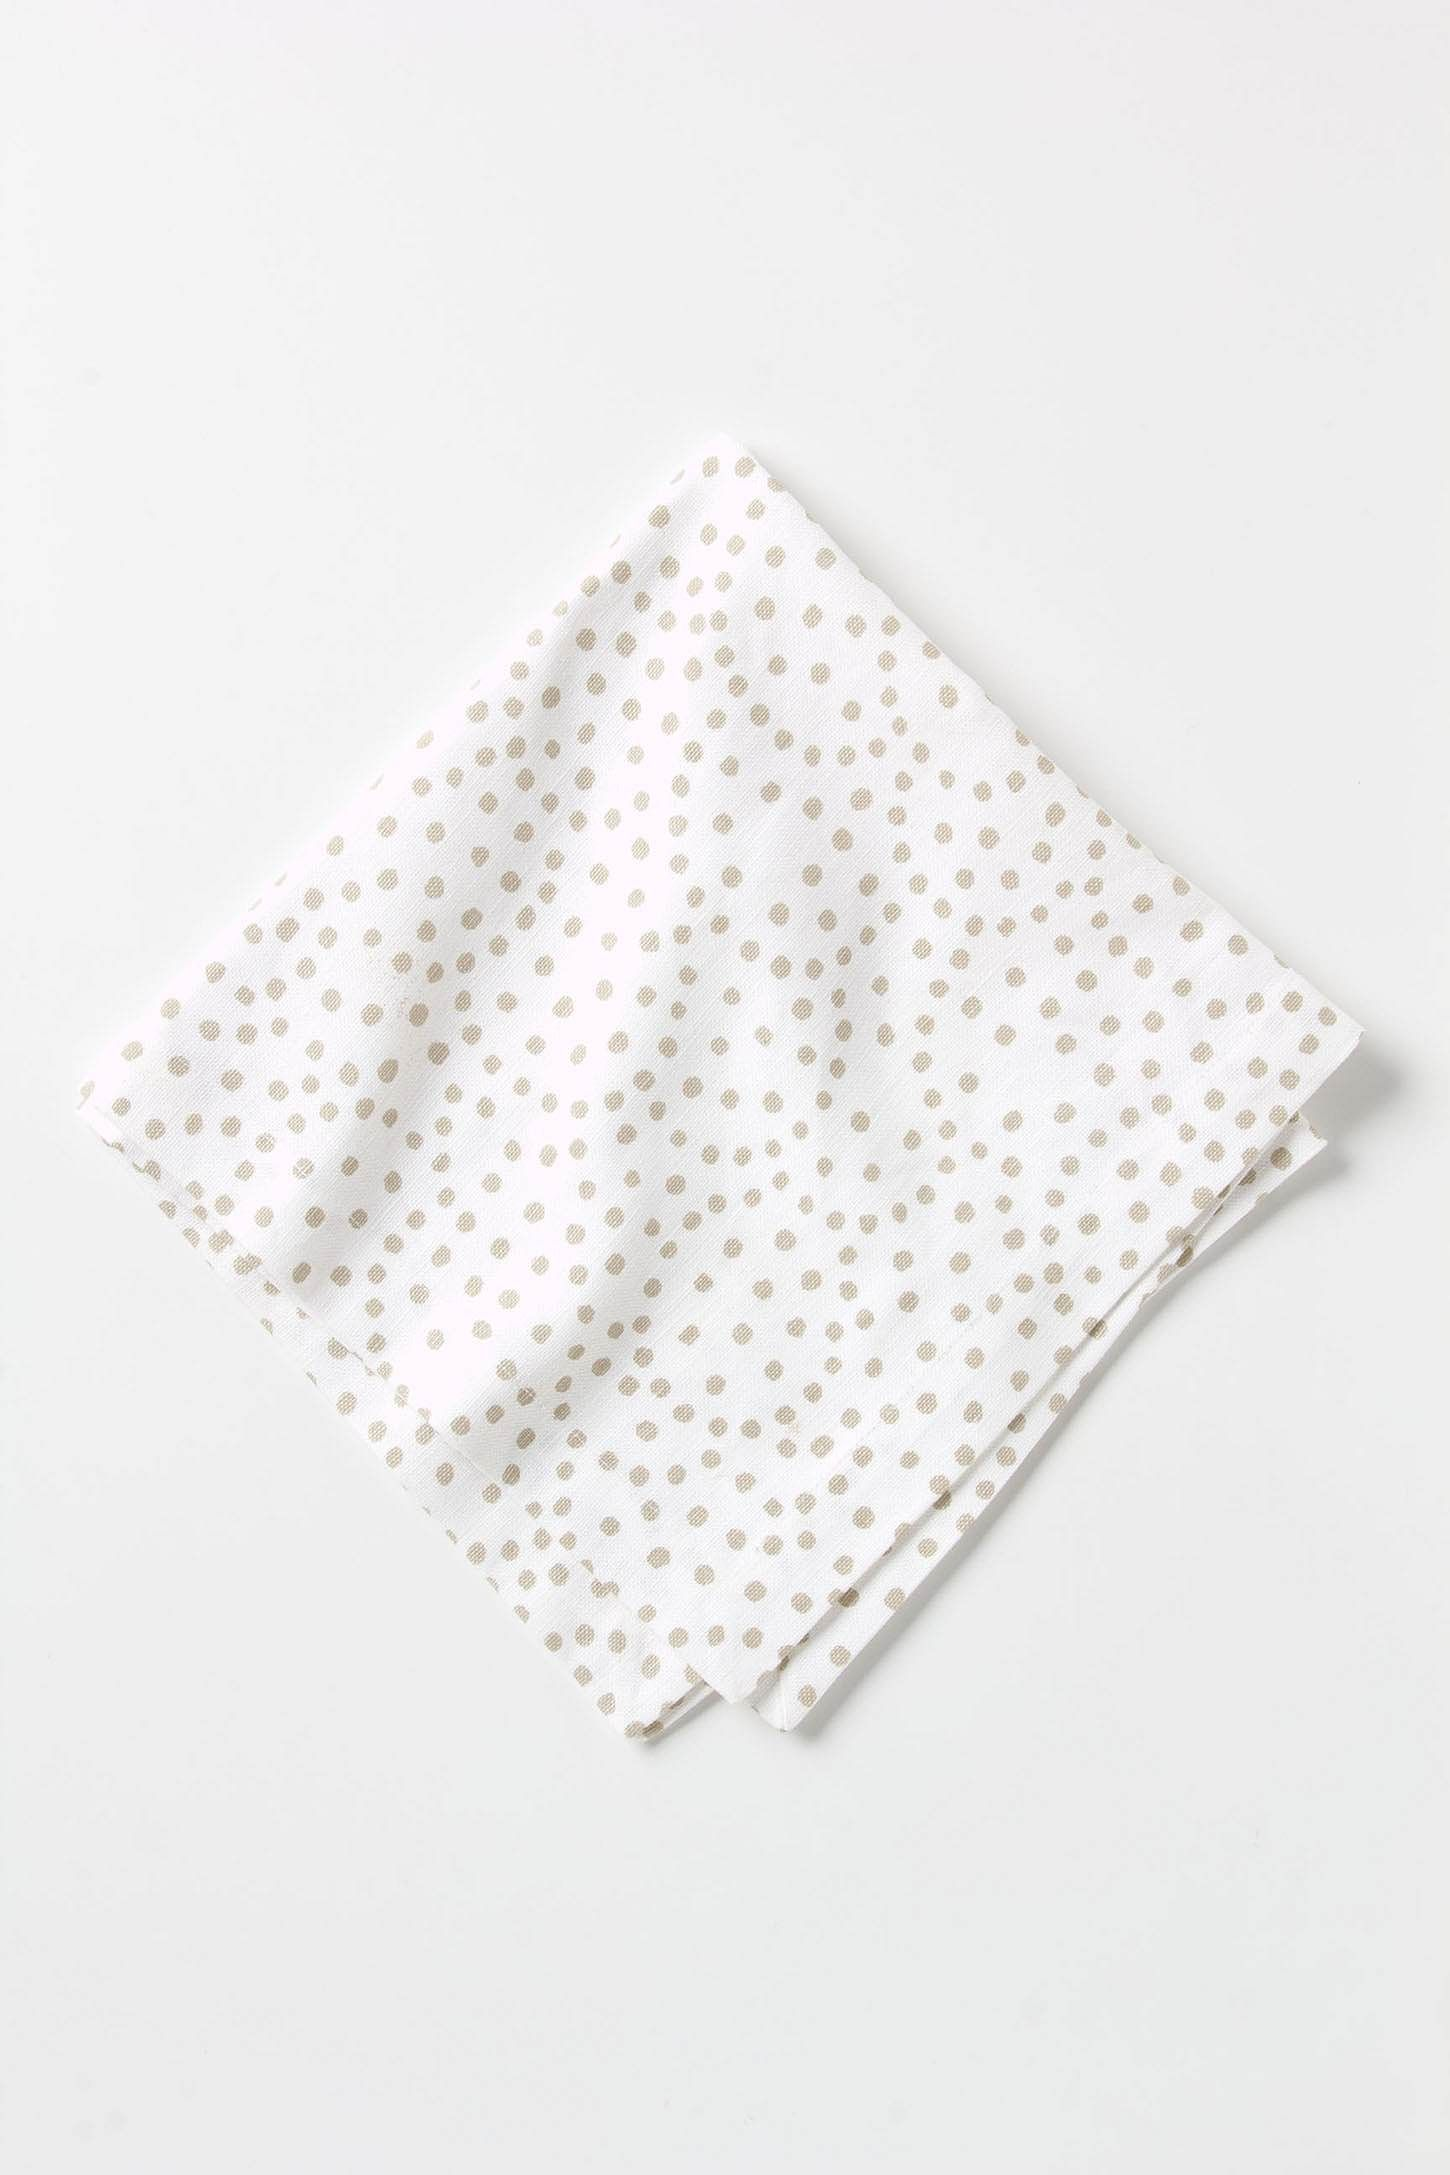 Dotted Napkin by Pehr